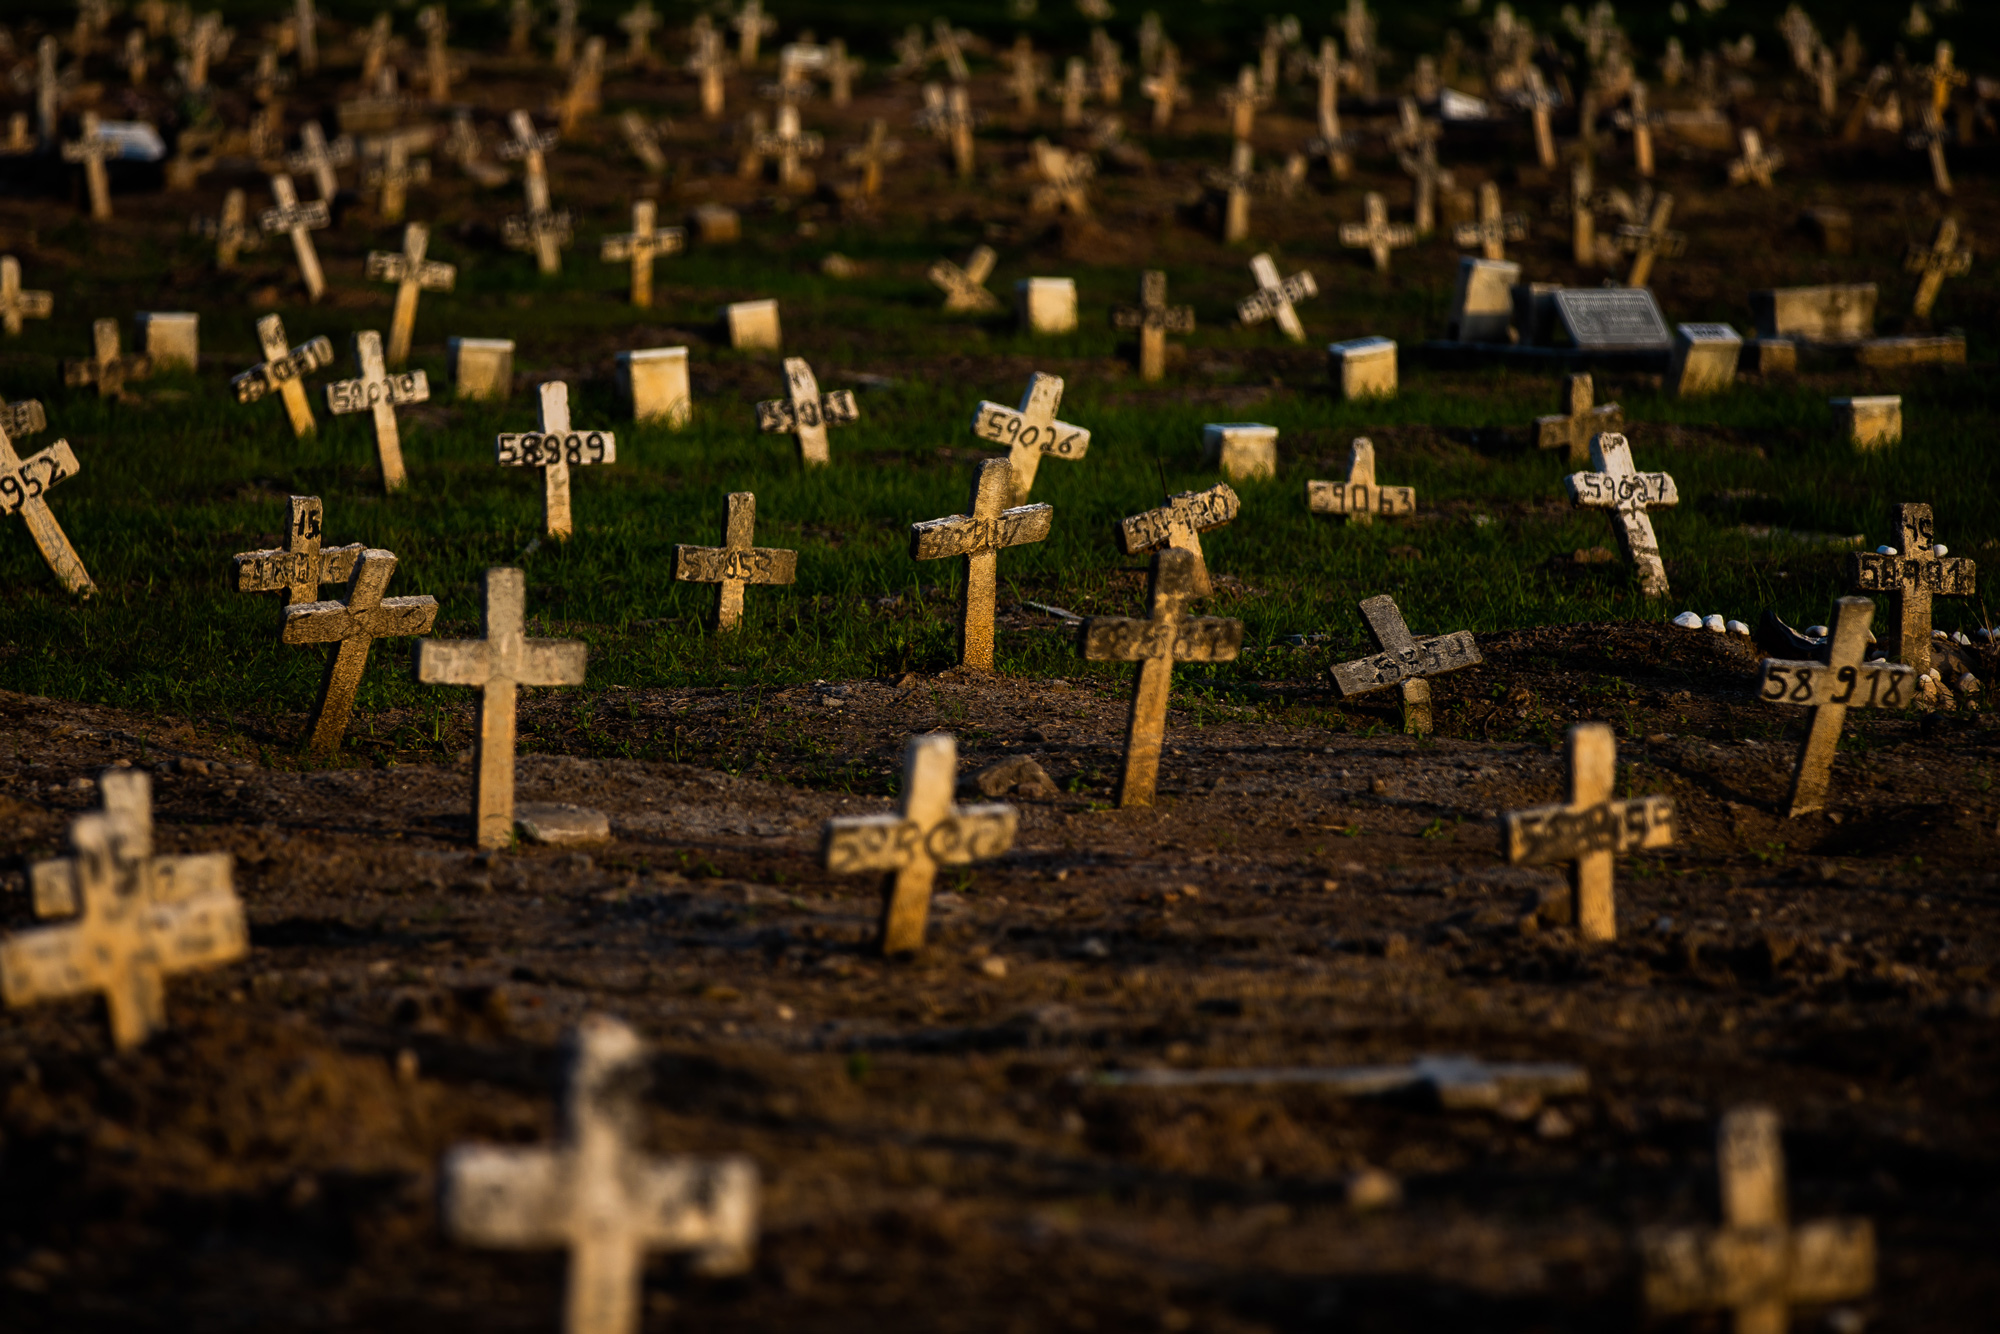 A general view of Caju cemetery is seen on March 24 in Rio de Janeiro, Brazil.